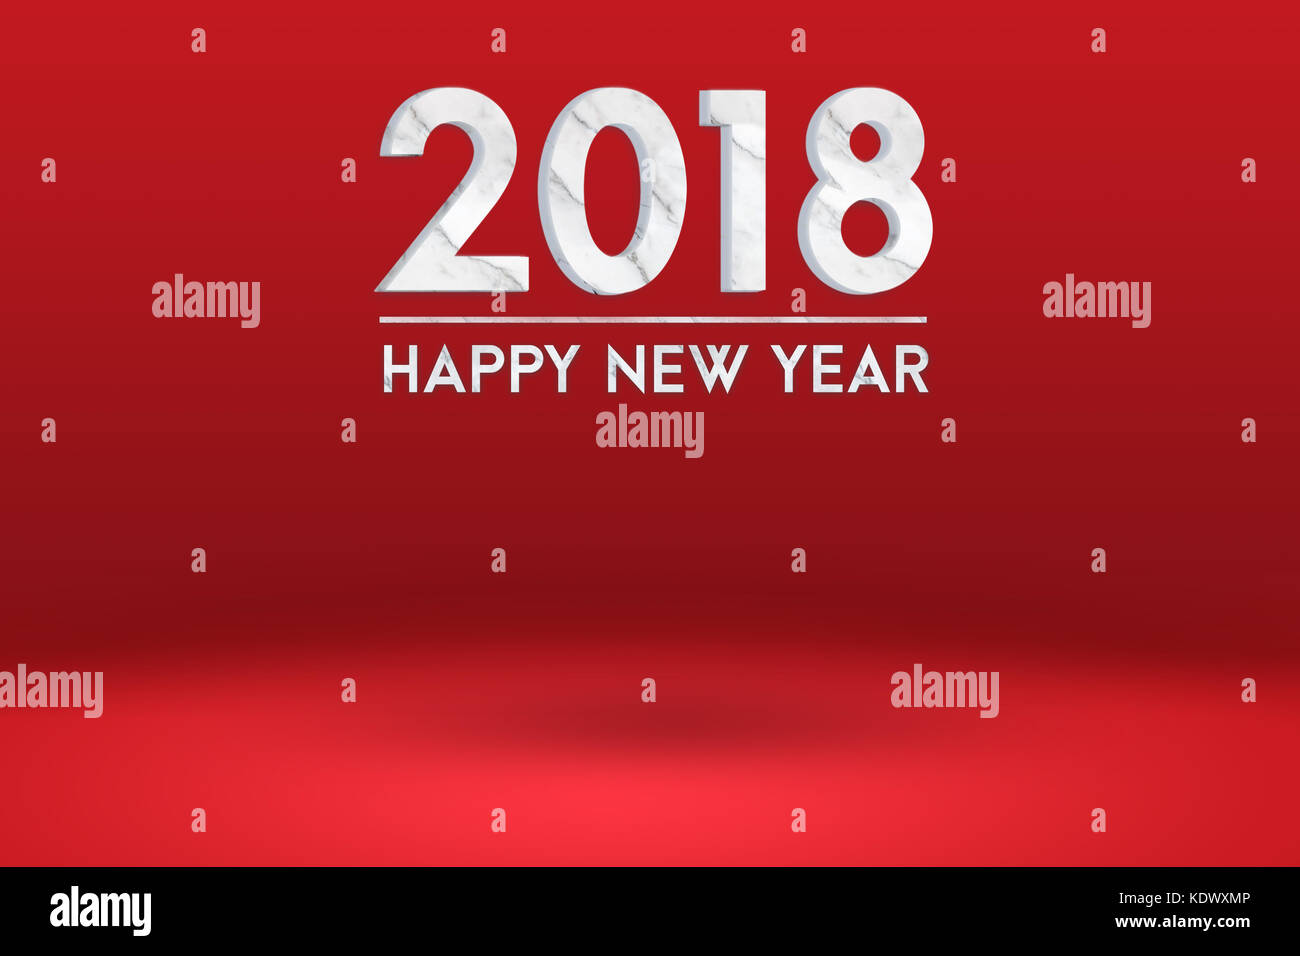 happy new year 2018 marble texture 3d rendering at red studio backdropmock up for adding or display of product and textholiday banner for adverti